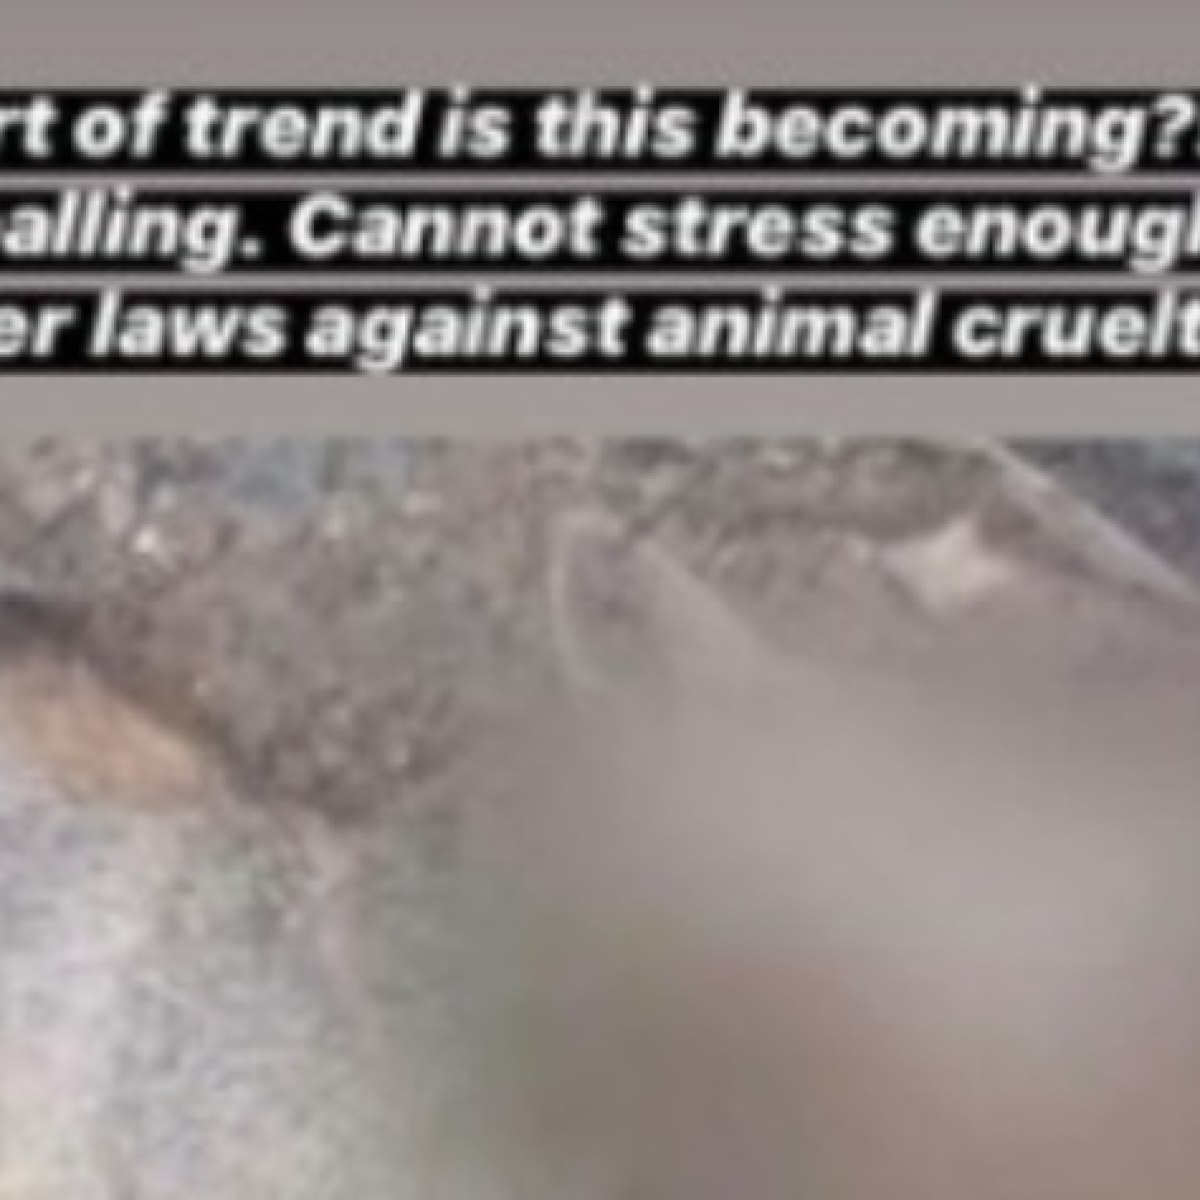 Anushka Sharma calls killing of jackal with meat bomb 'appalling', demands stricter laws against animal cruelty